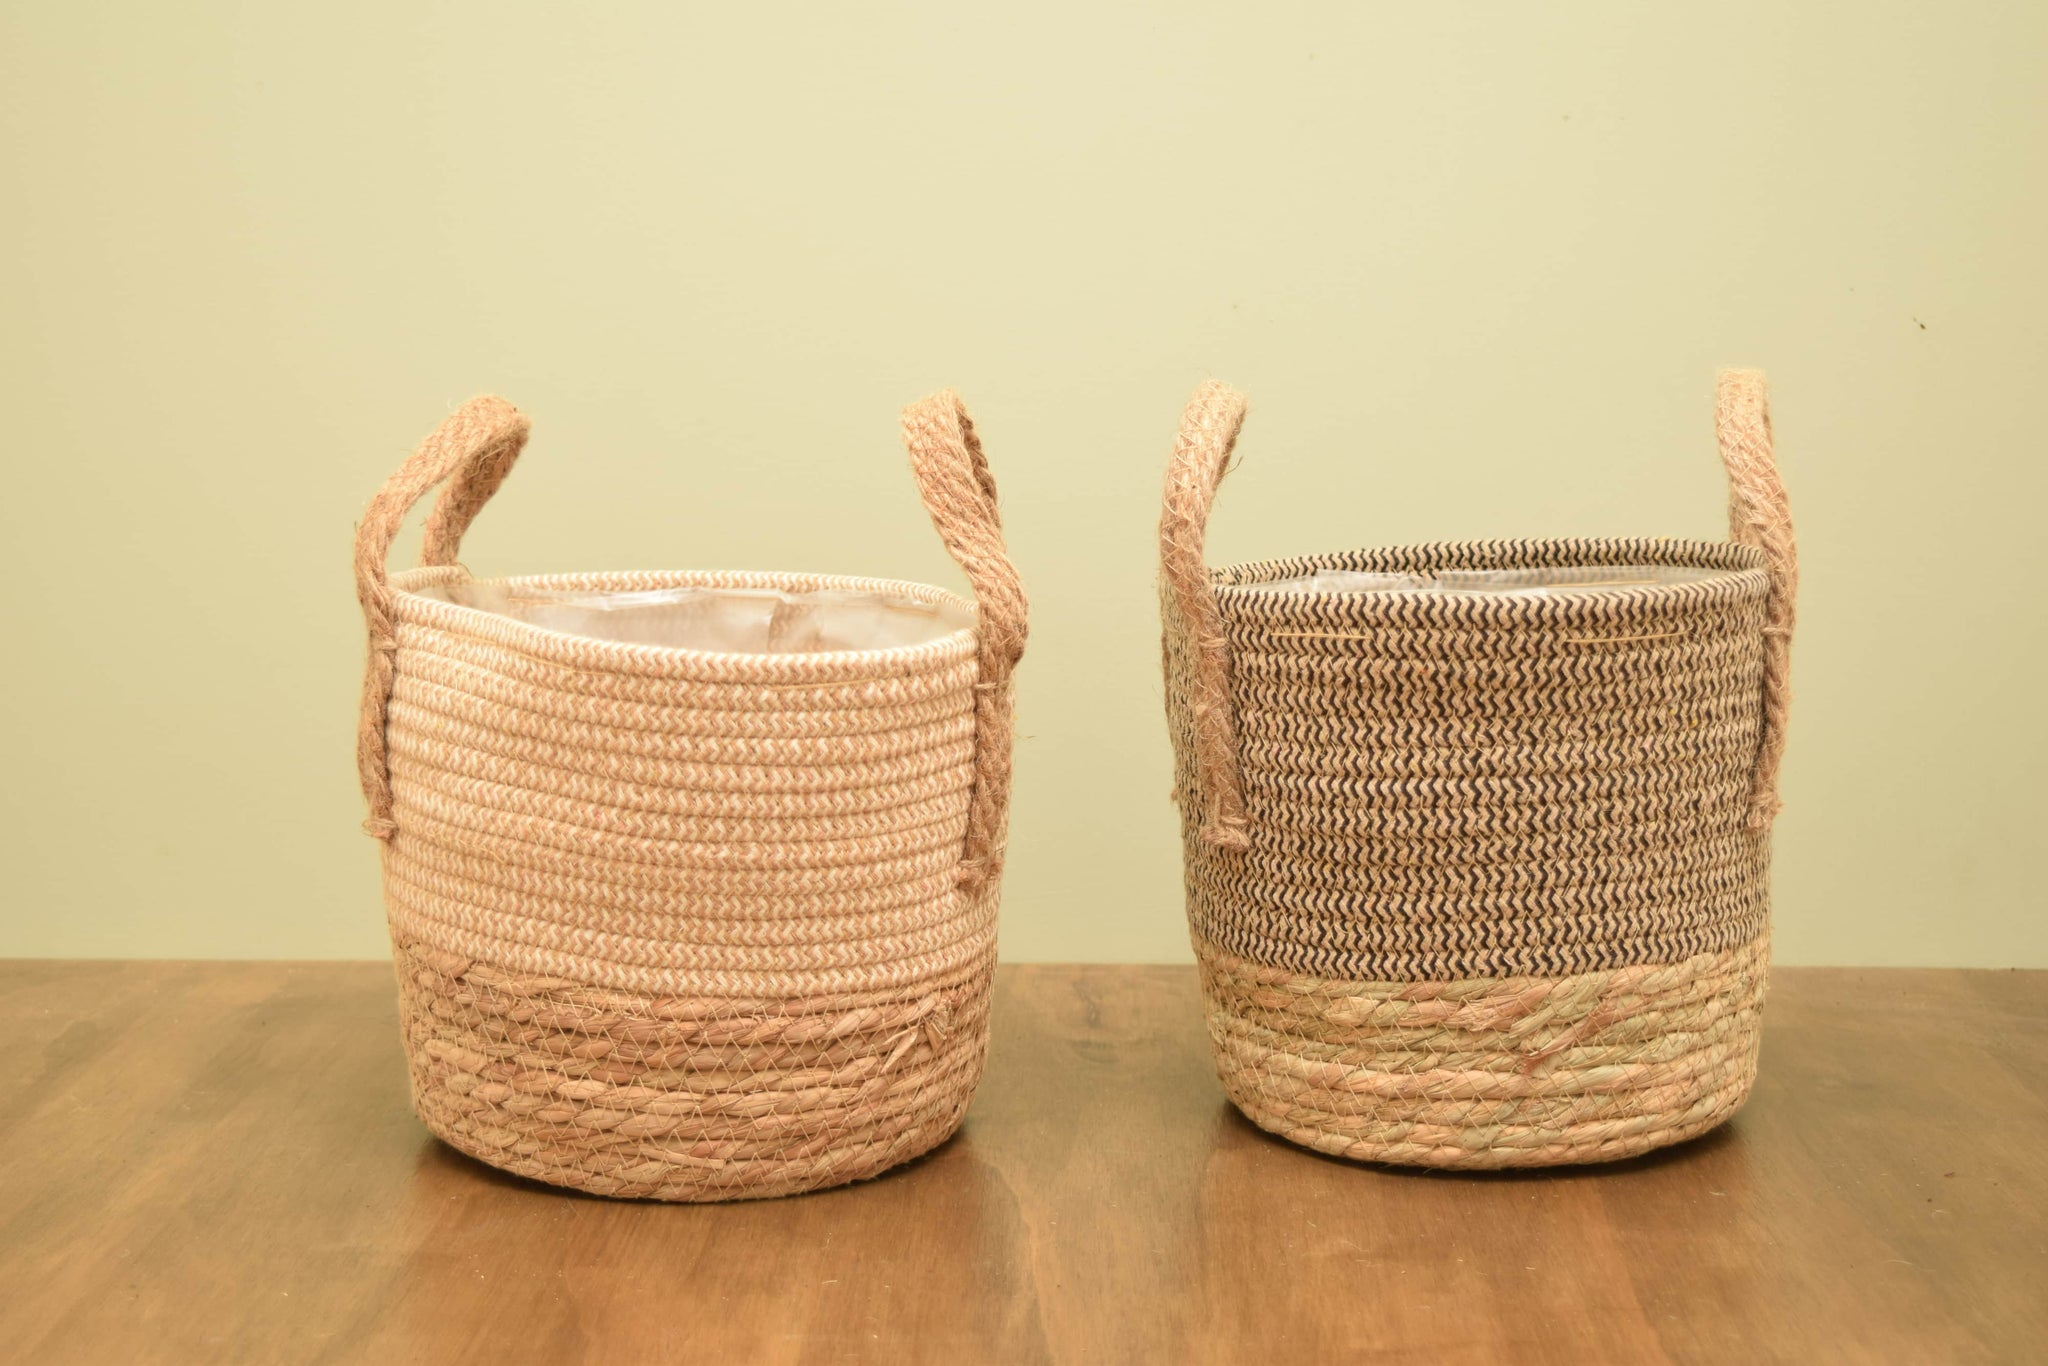 Rope and Seagrass Basket